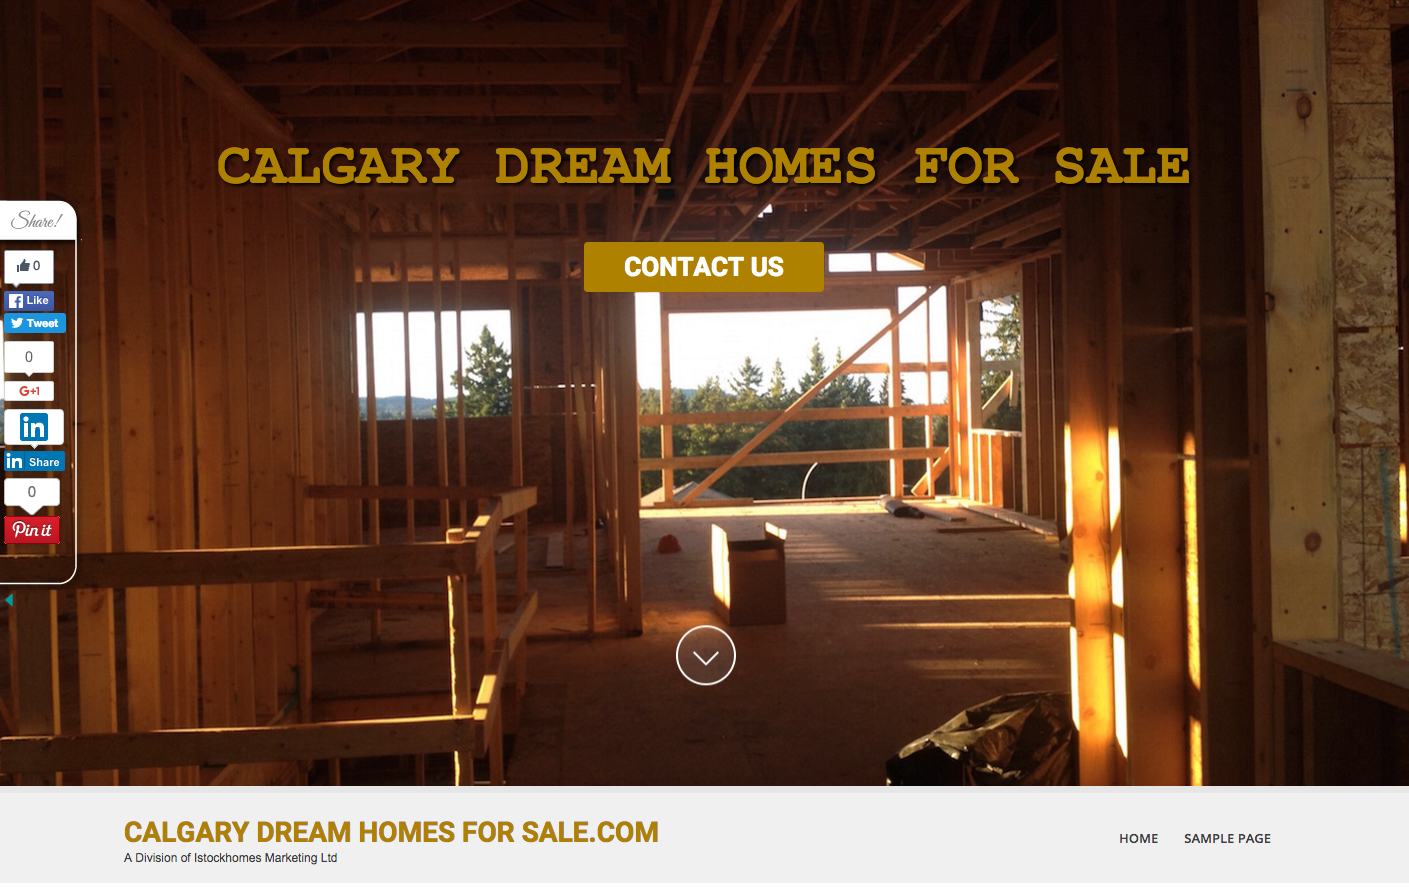 CALGARY DREAM HOMES FOR SALE